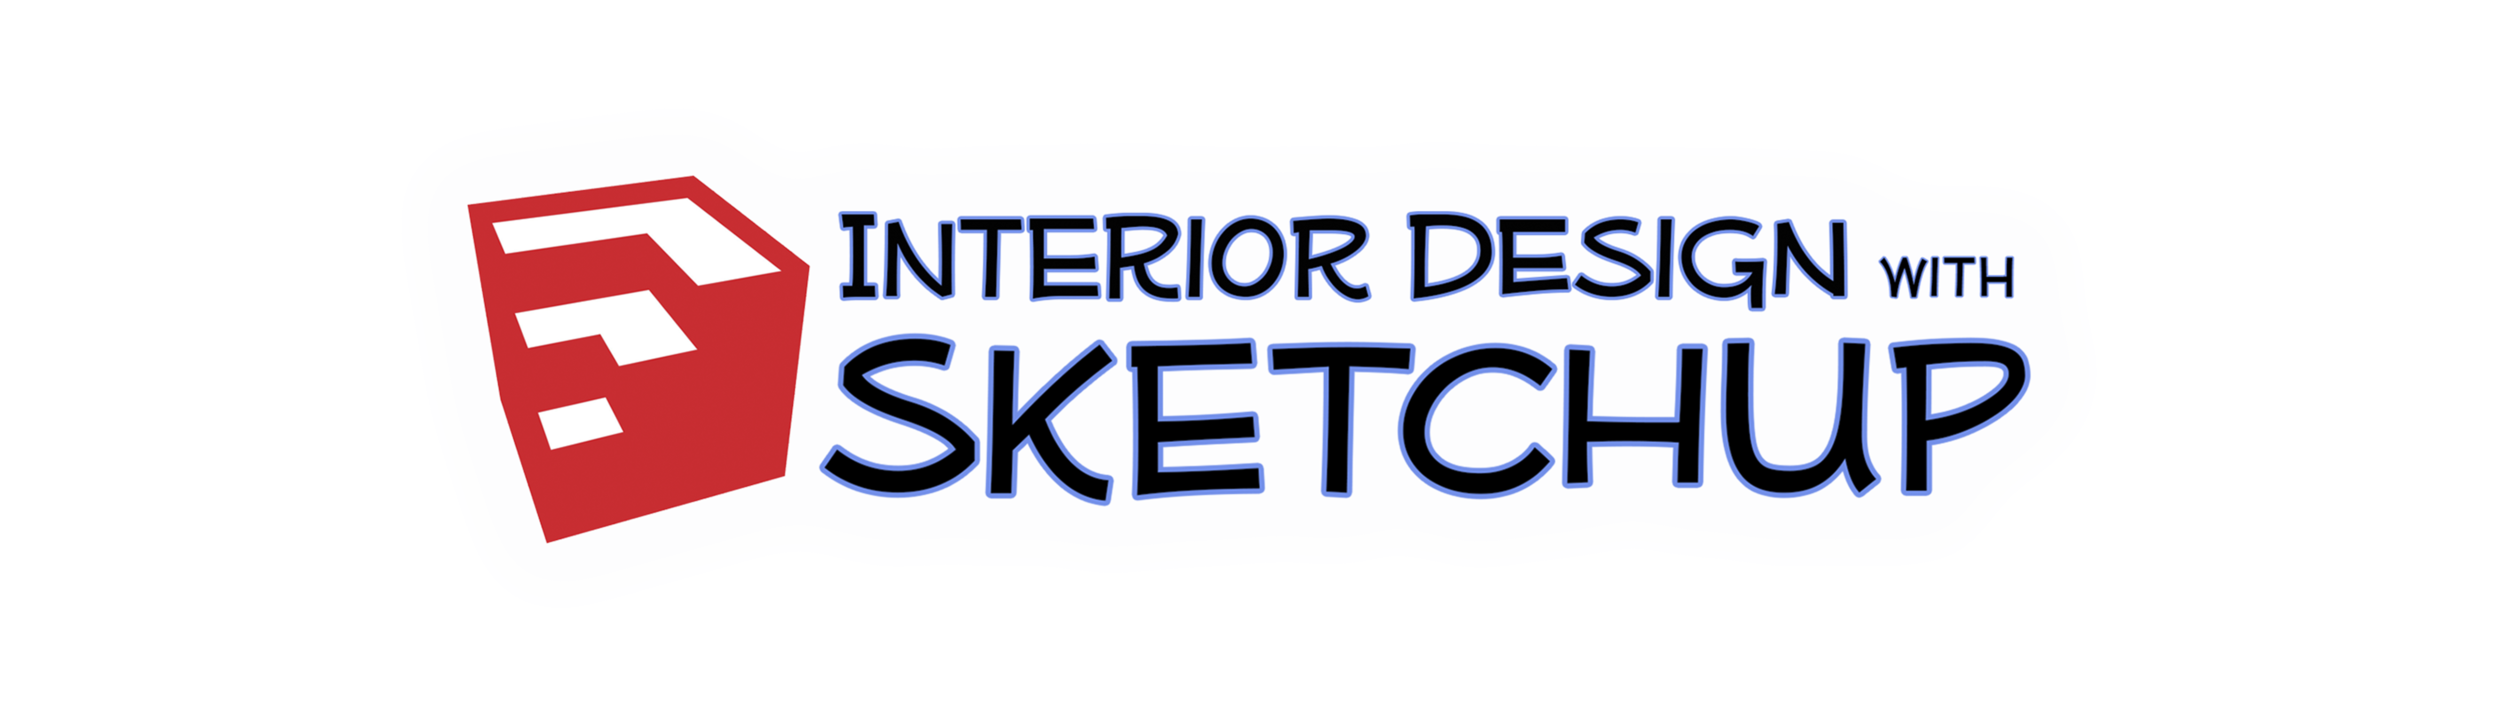 Learn sketchup with my tutorial series on youtube. Please Subscribe for regular updates!